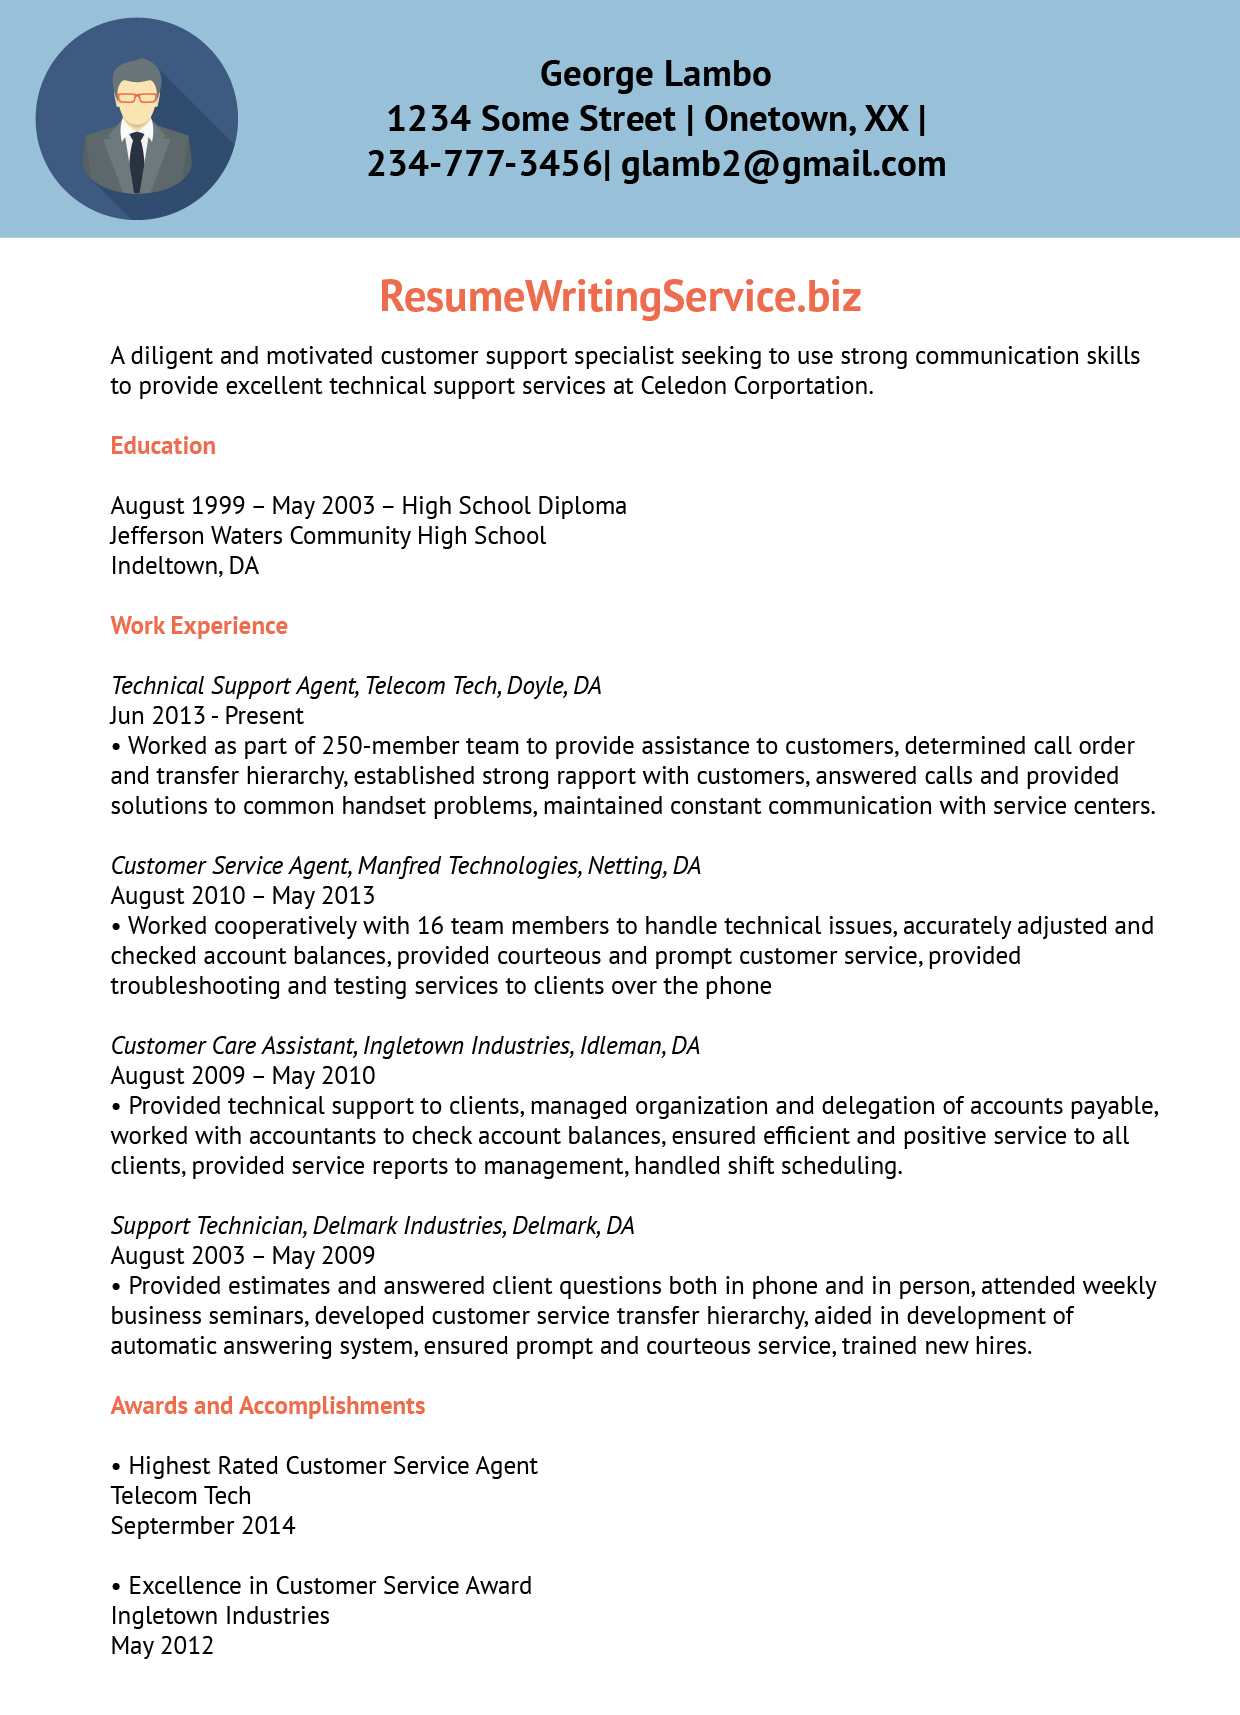 Technical Support Agent Resume